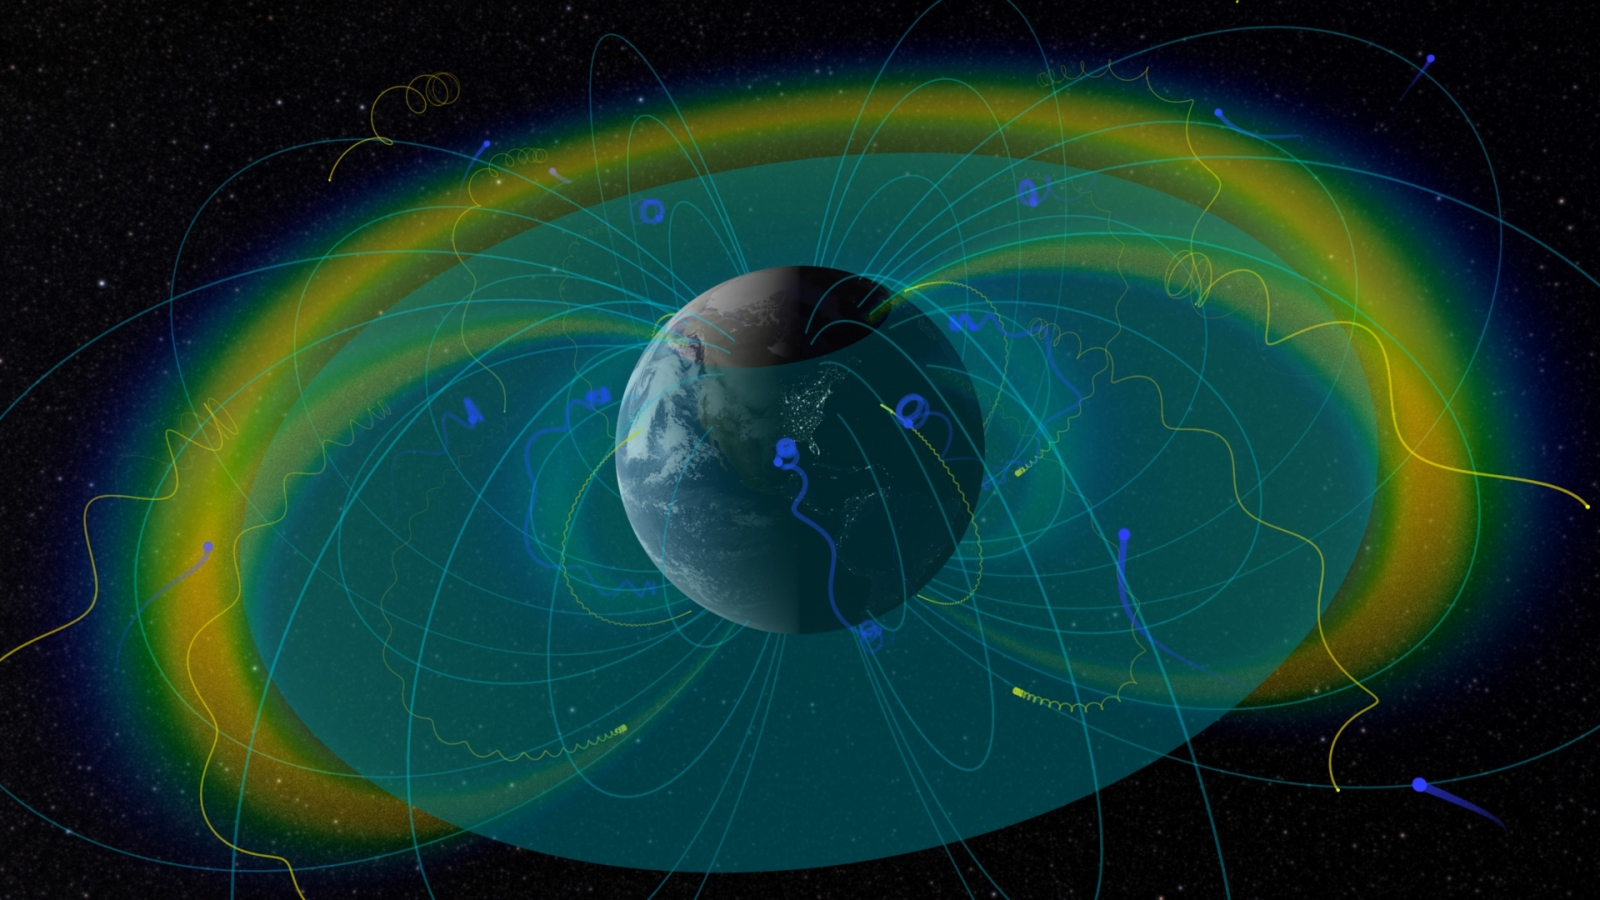 invisible-star-trek-force-field-protects-earth-killer-electrons